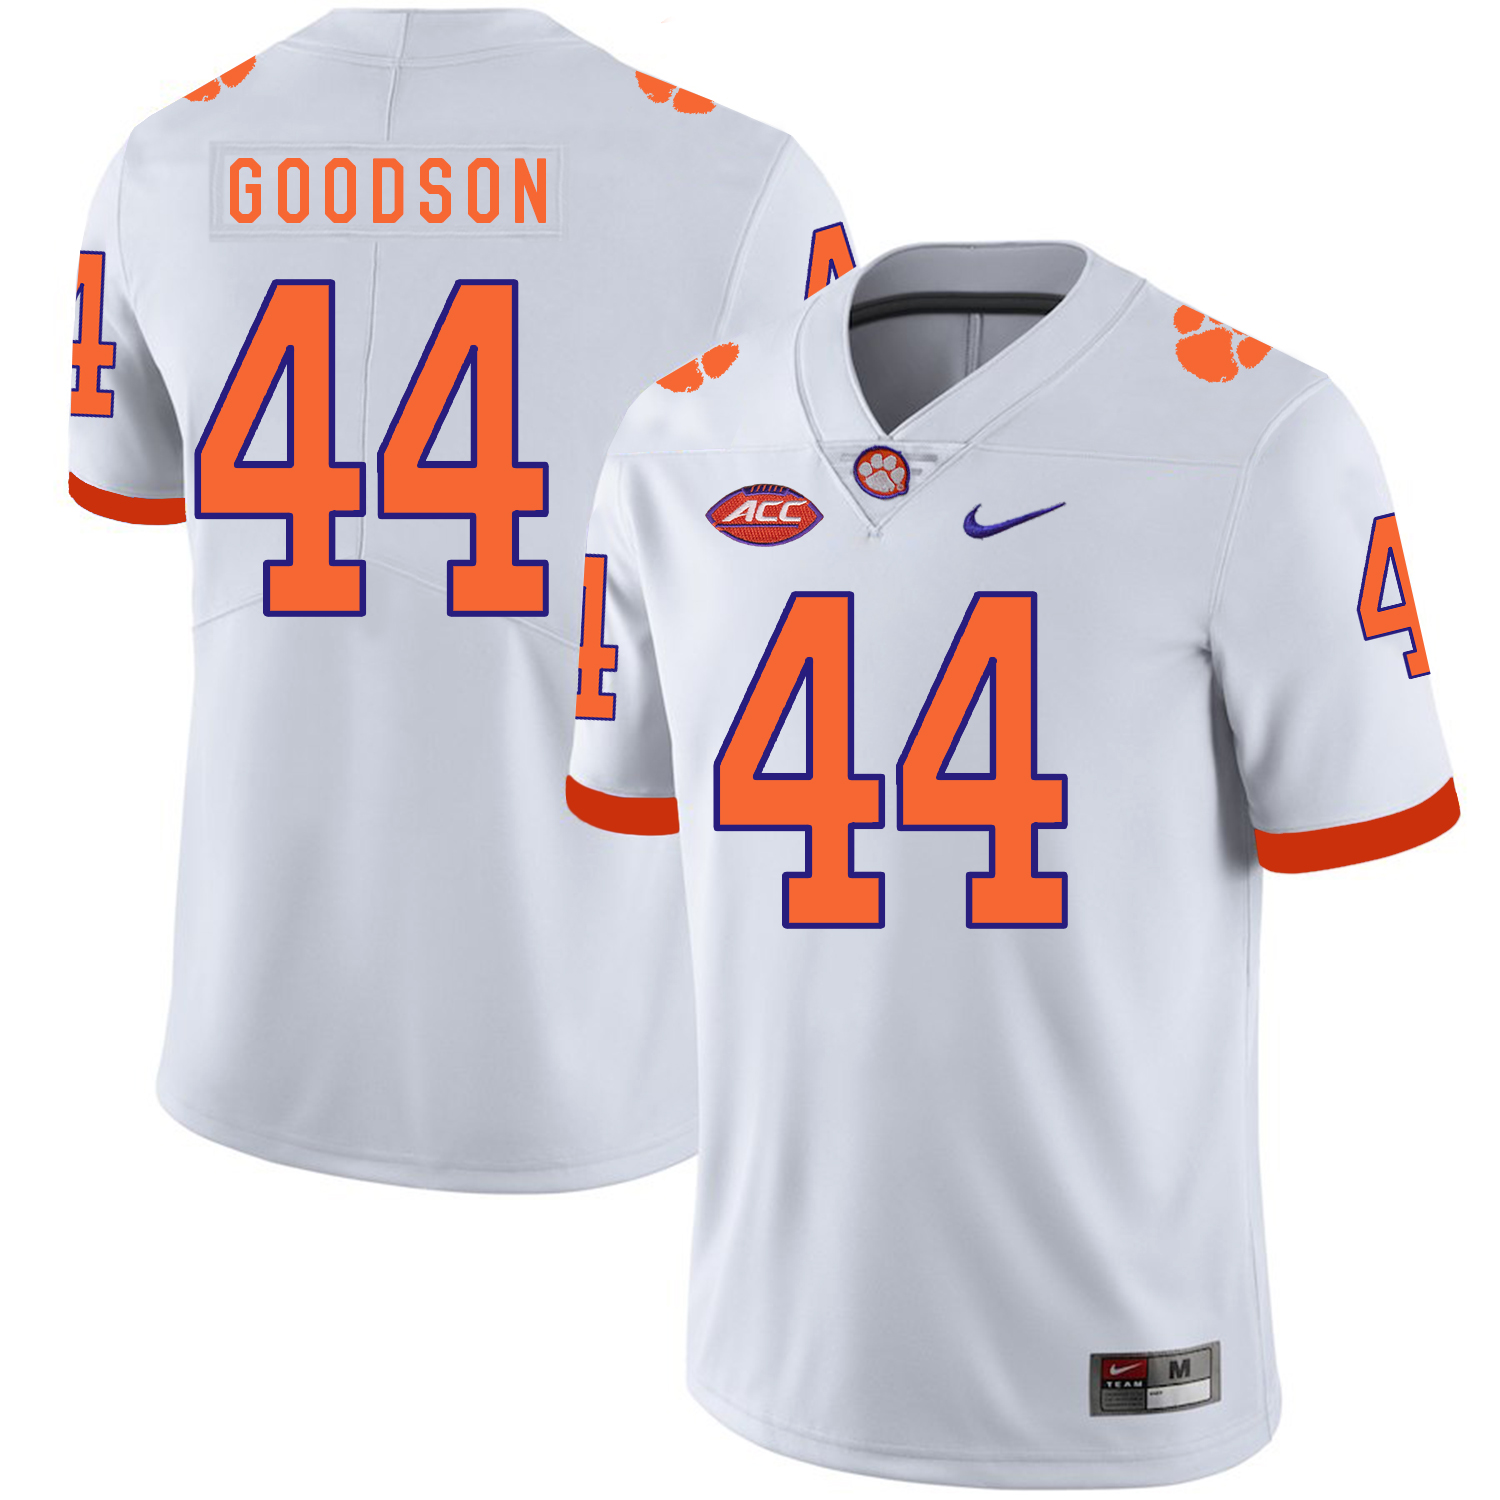 Clemson Tigers 44 B.J. Goodson White Nike College Football Jersey